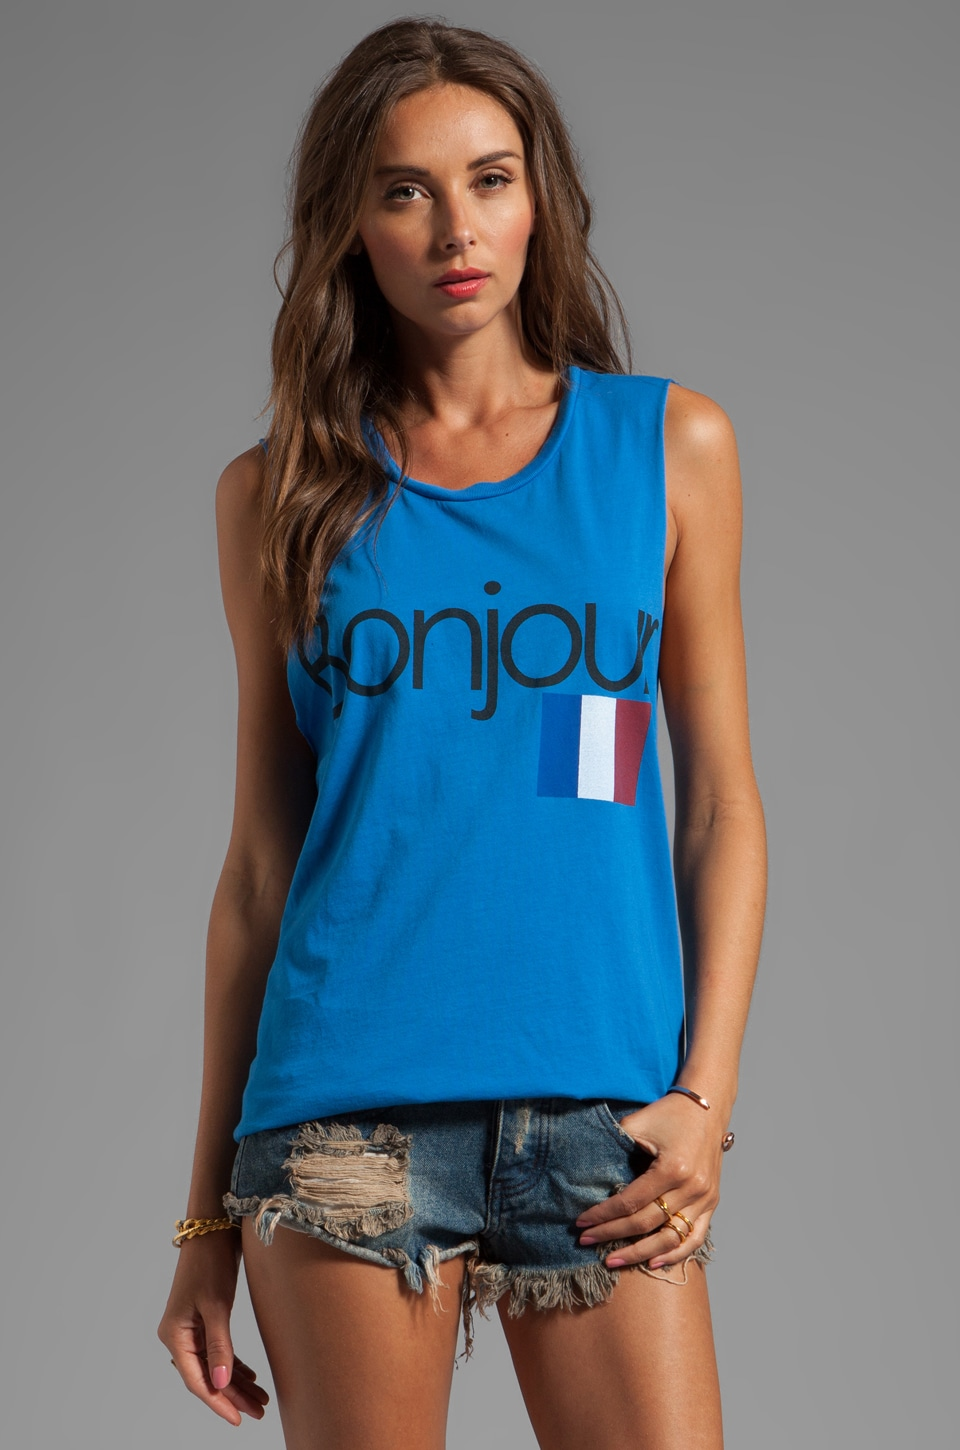 Rebel Yell Bonjour Cut-Off Tank in Vintage Royal